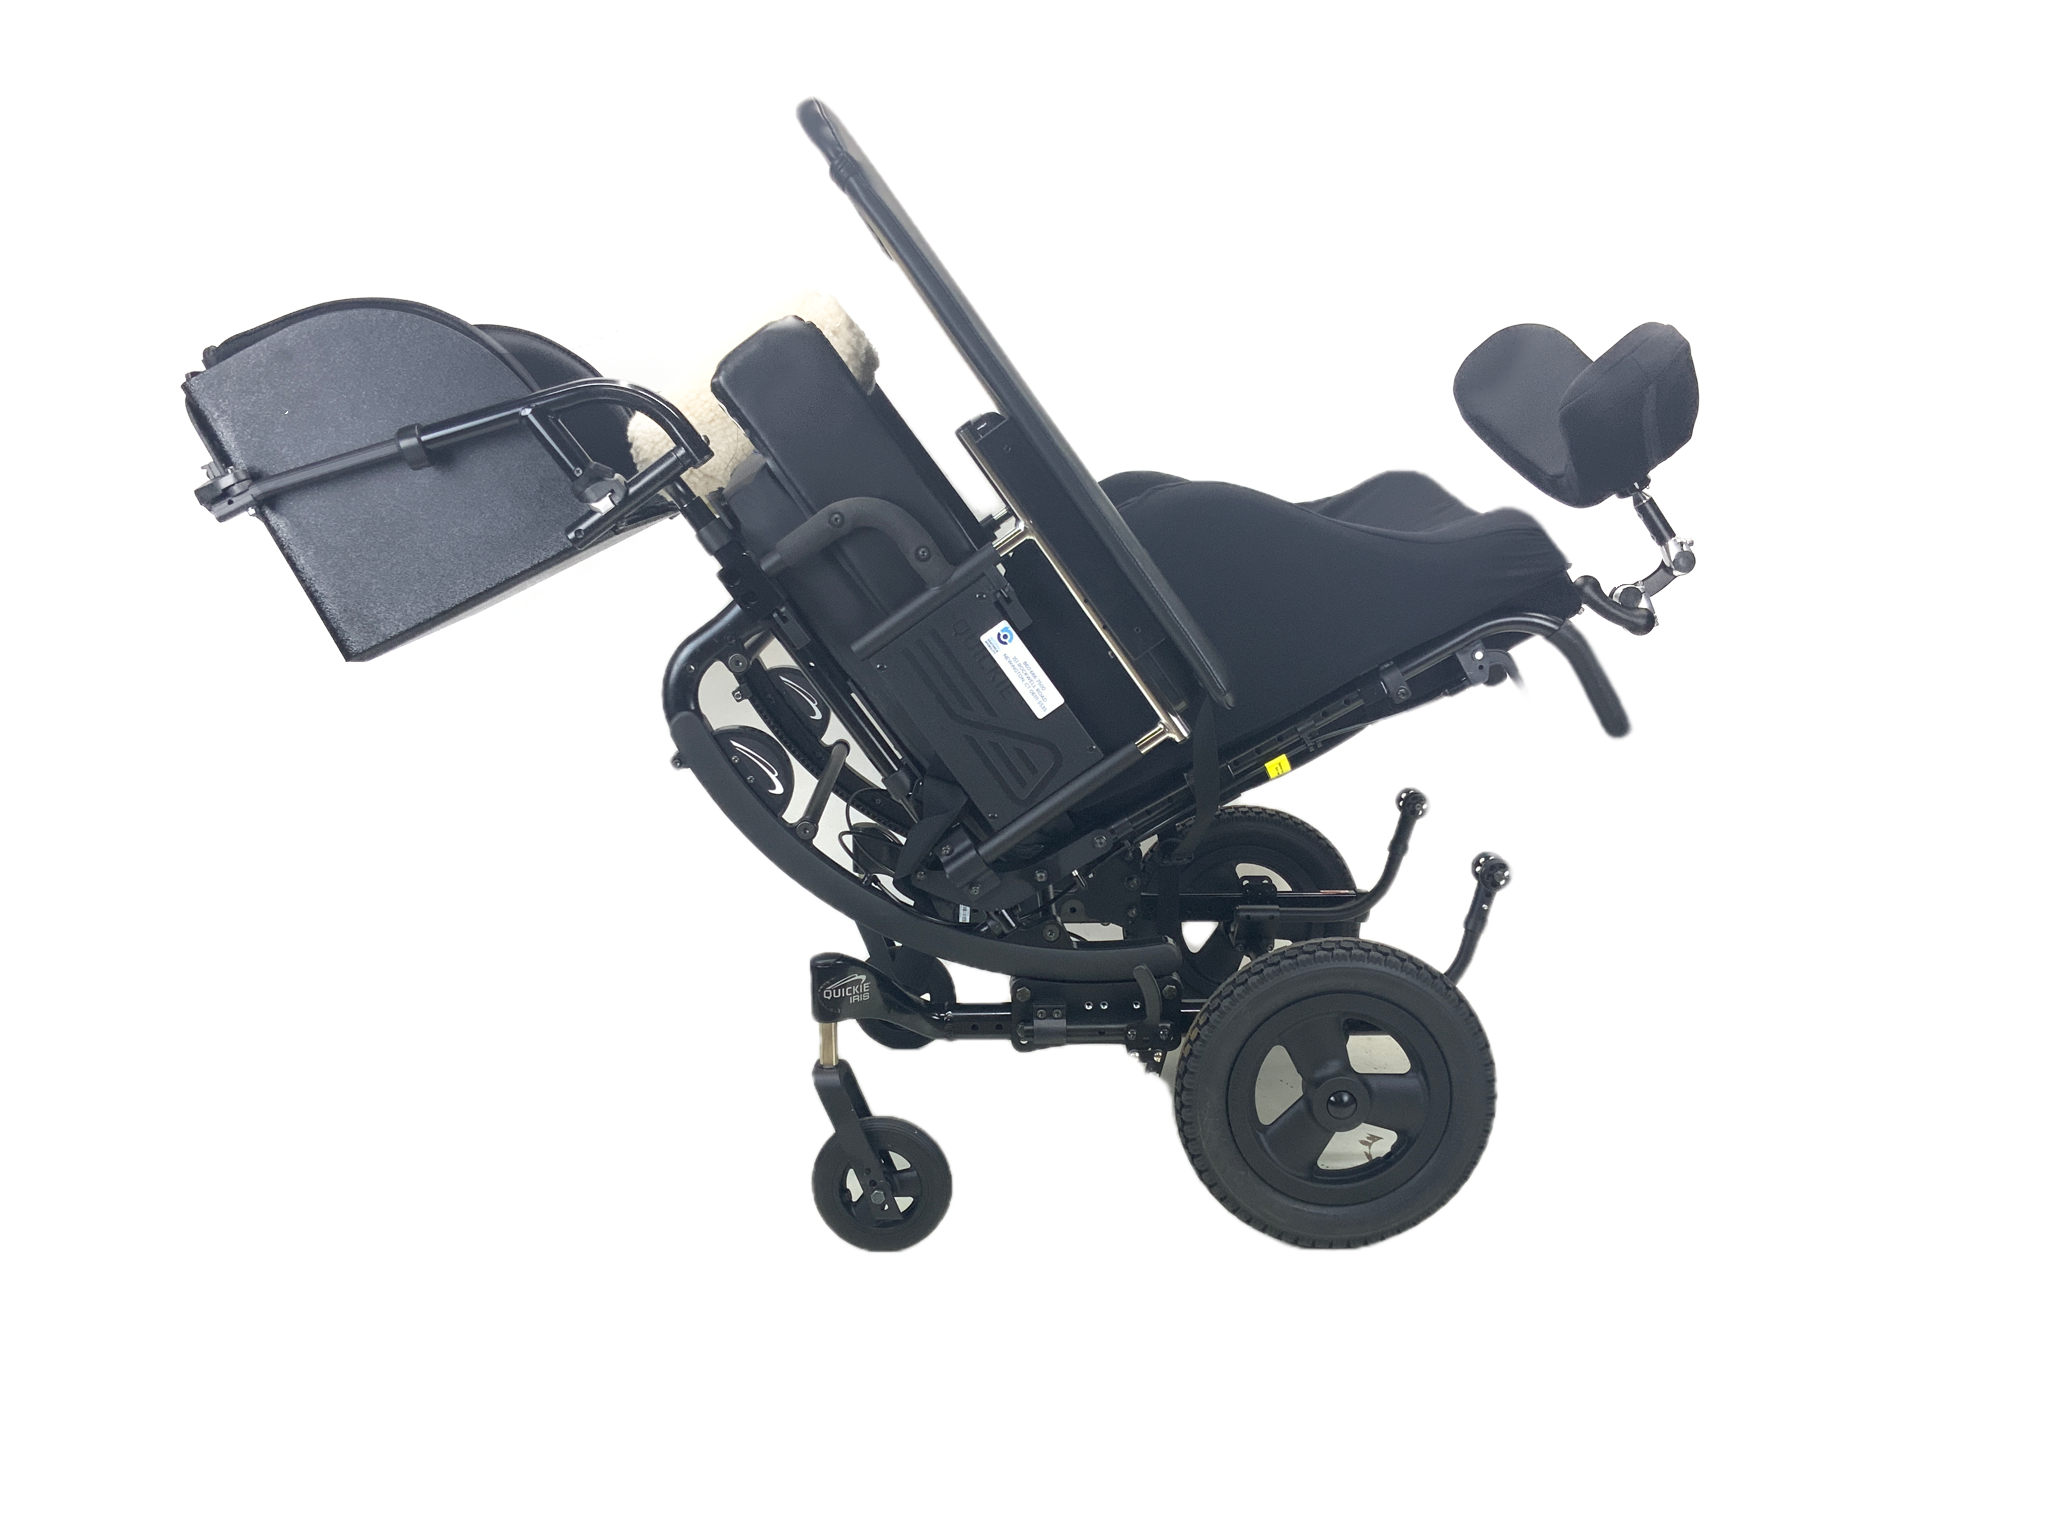 New Quickie Iris Tilt-In-Space Manual Wheelchair | 18 x 18 Inches | Legbox, Thigh Supports, Abductor Pad, Removable Activity Tray